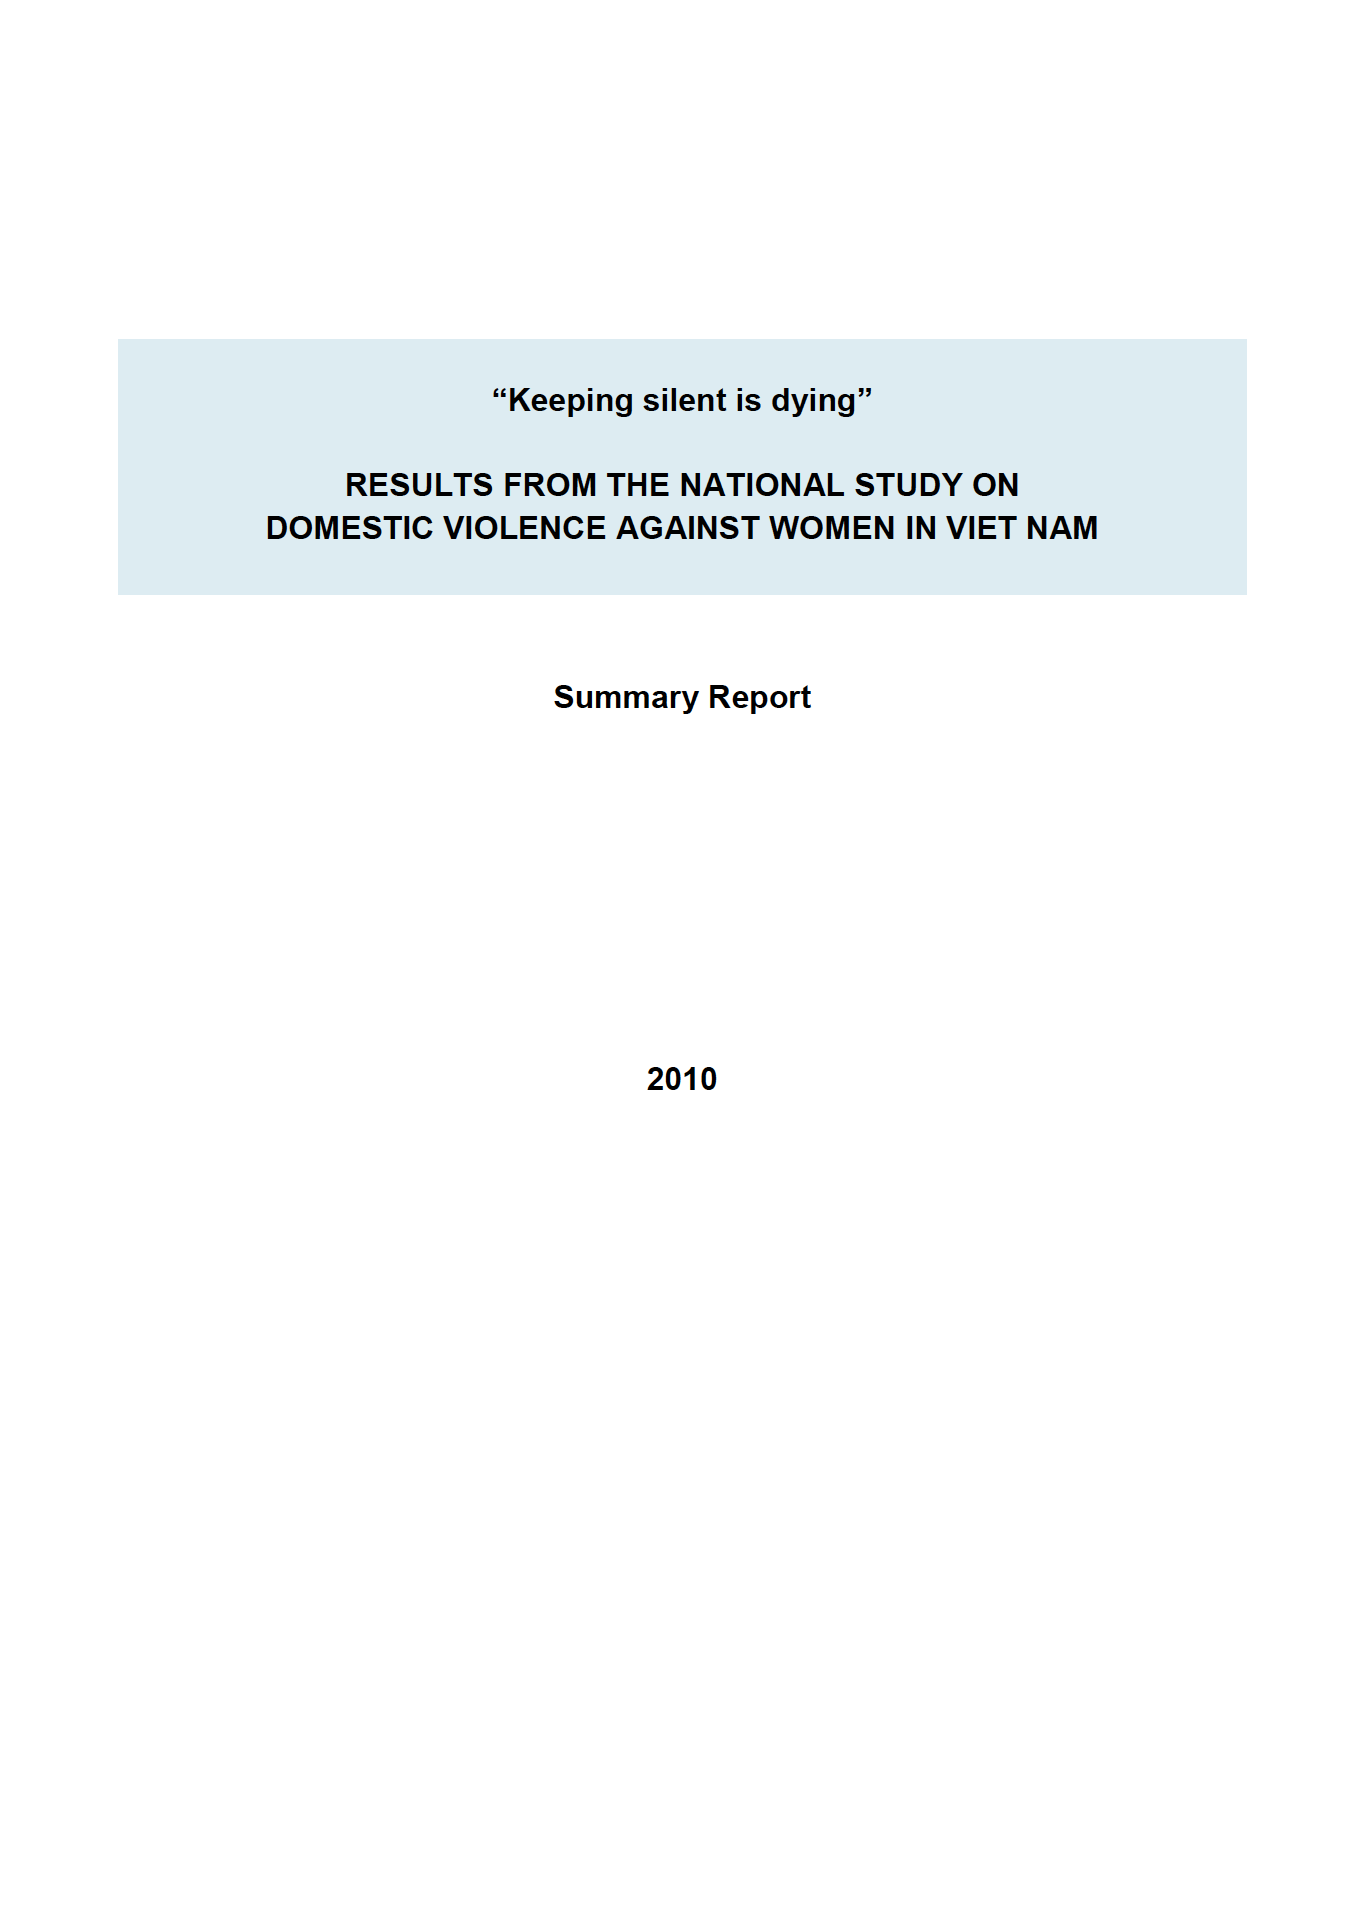 Cover of National Study on Domestic Violence against Women in Viet Nam 2010: summary report